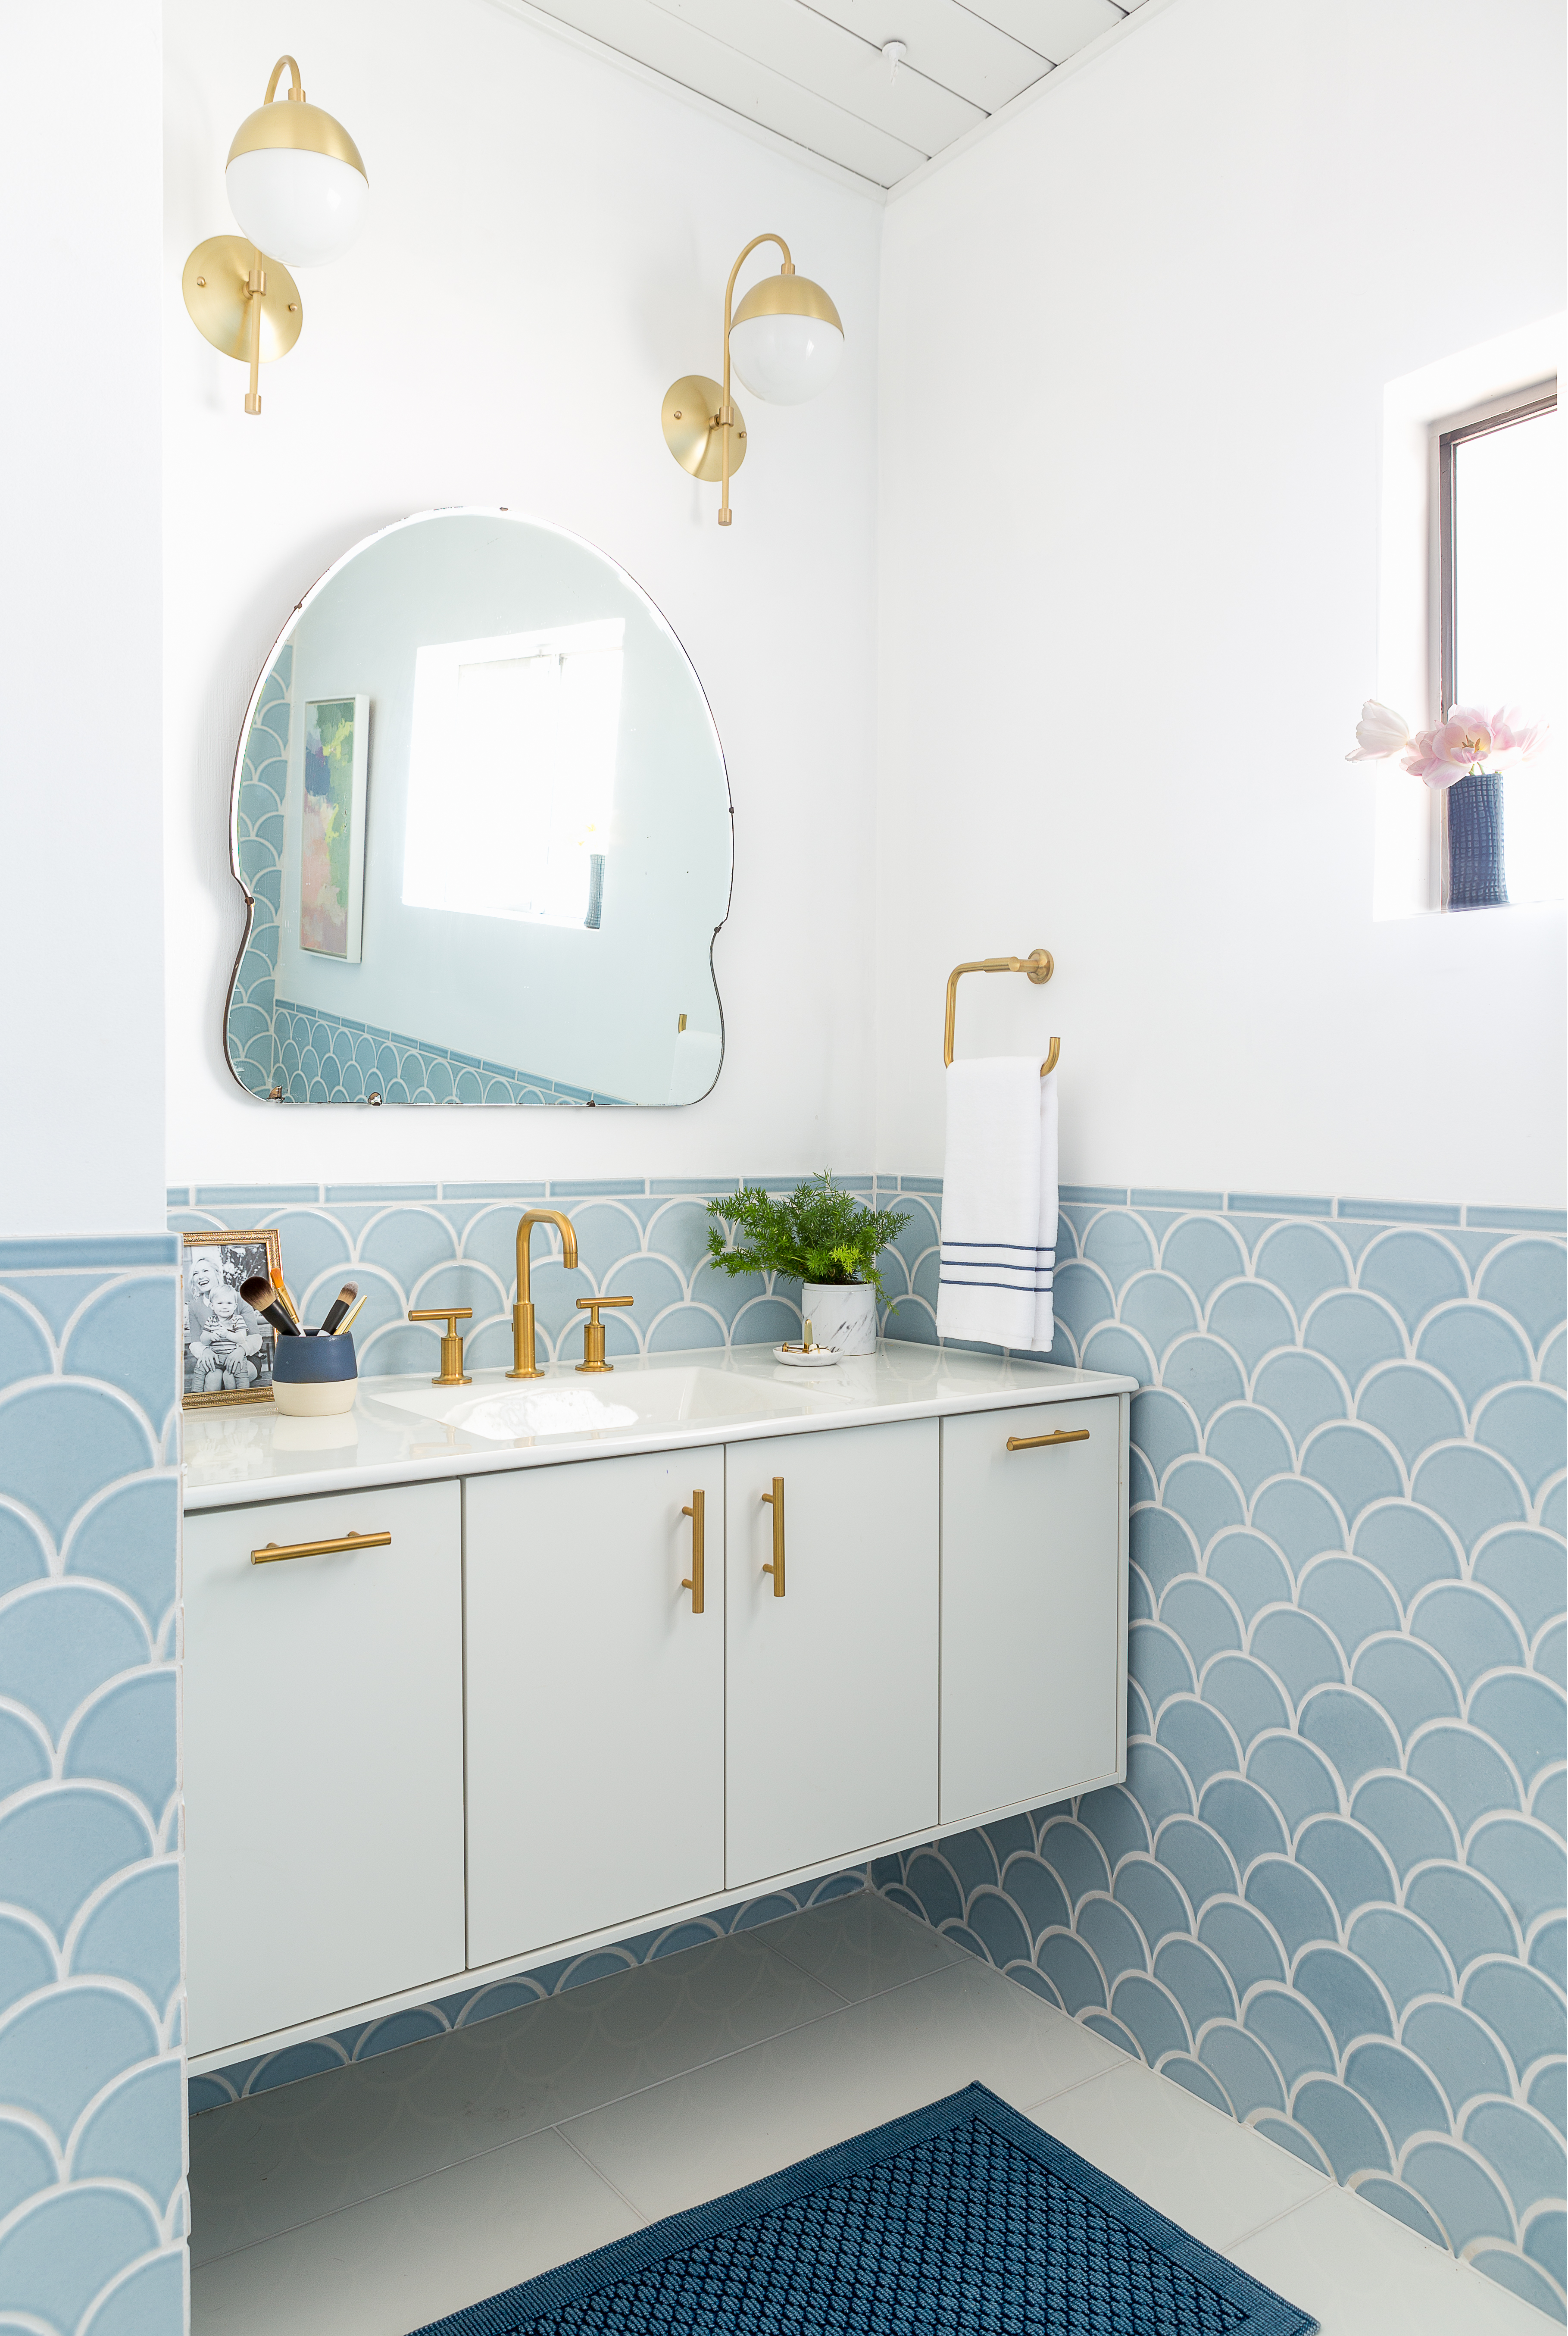 Emily Henderson's bathroom features our Ogee Drops in Crater Lake